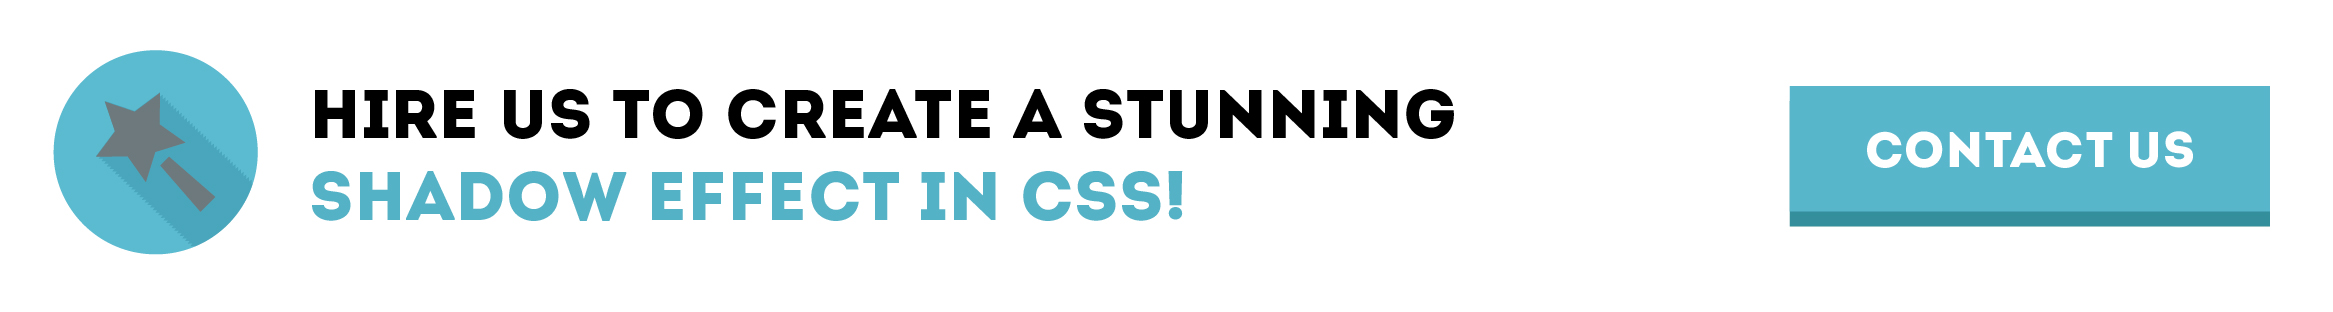 shadow effect in css